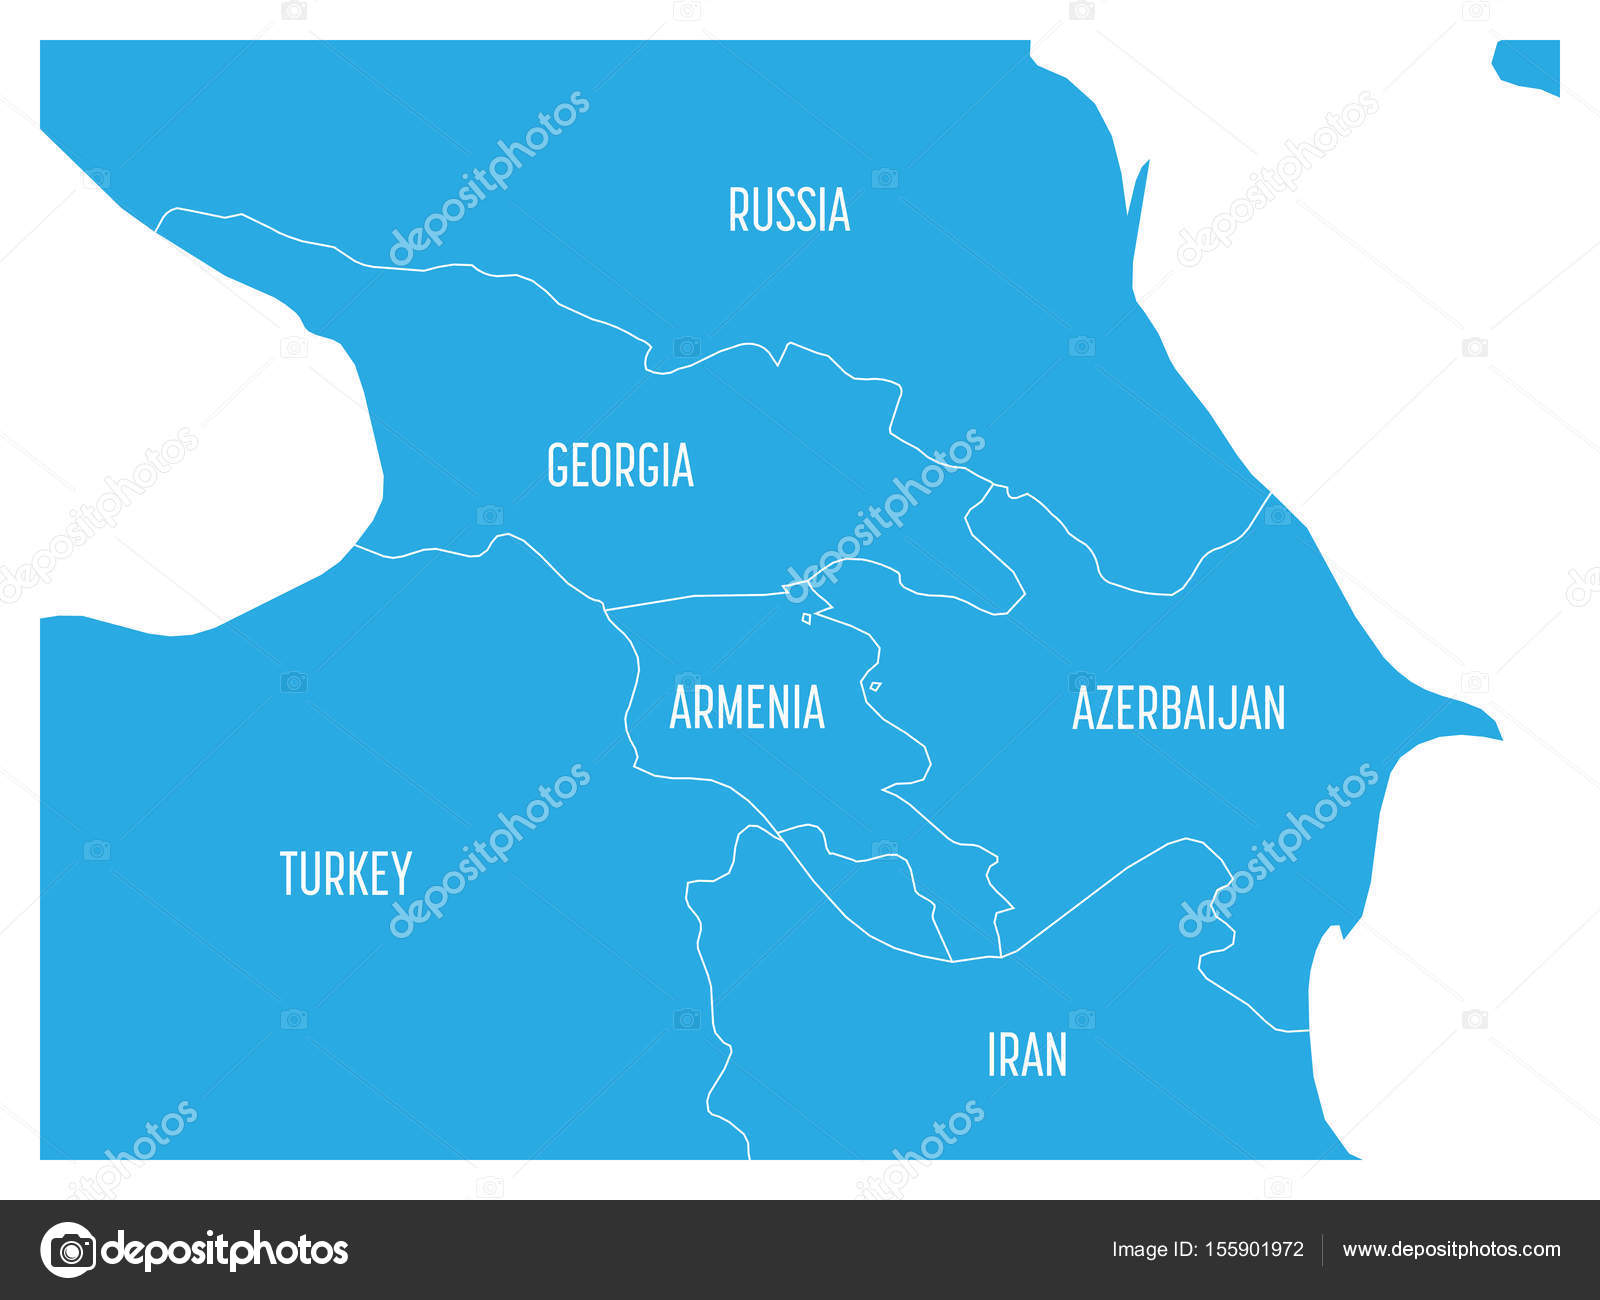 Map of caucasian region with states of georgia armenia map of caucasian region with states of georgia armenia azerbaijan russia turkey and iran flat blue map with white country borders and labels gumiabroncs Image collections